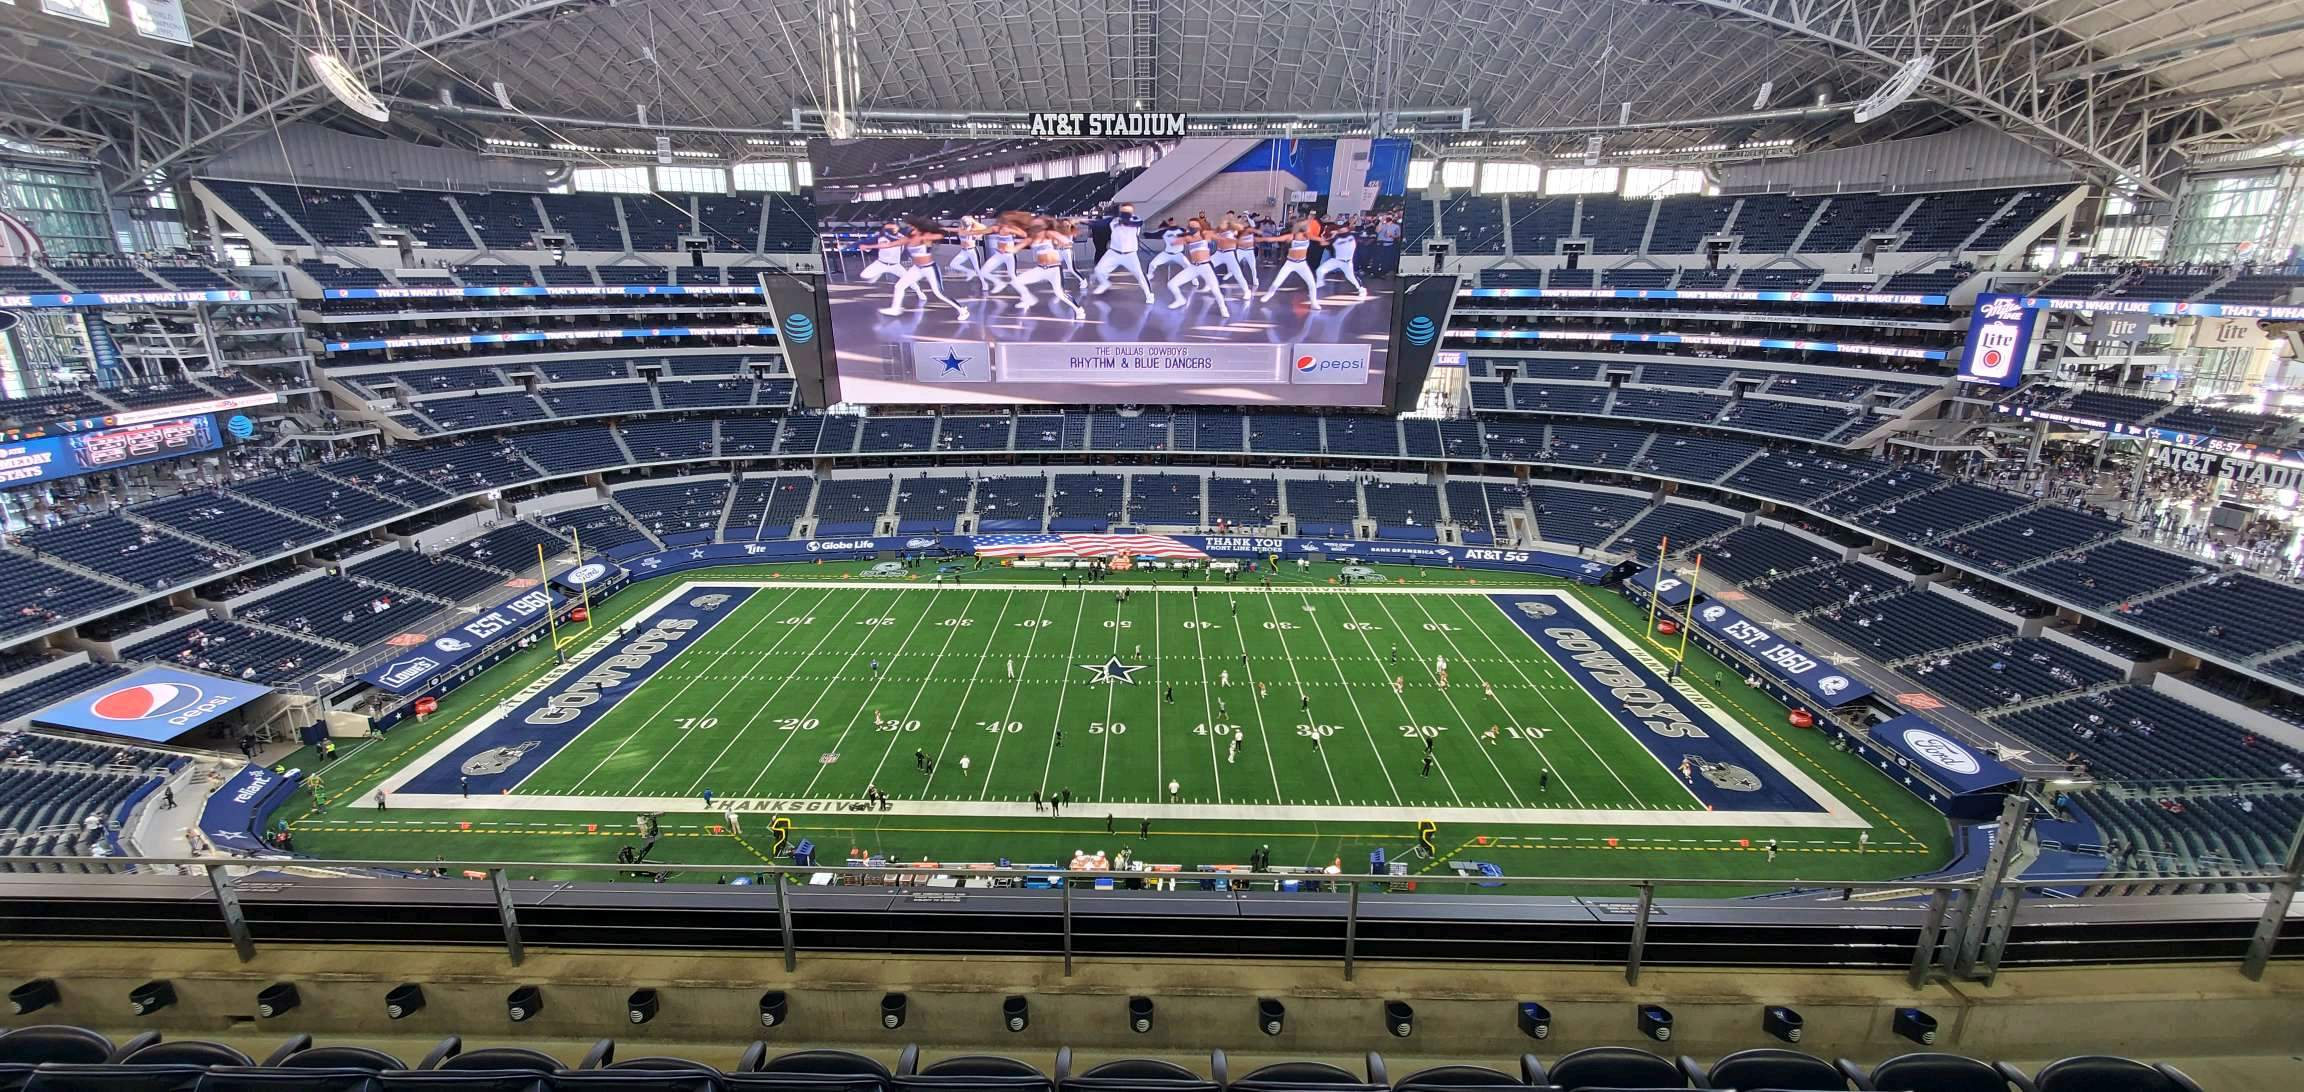 AT&T Stadium Section 443 Row 4 Seat 12